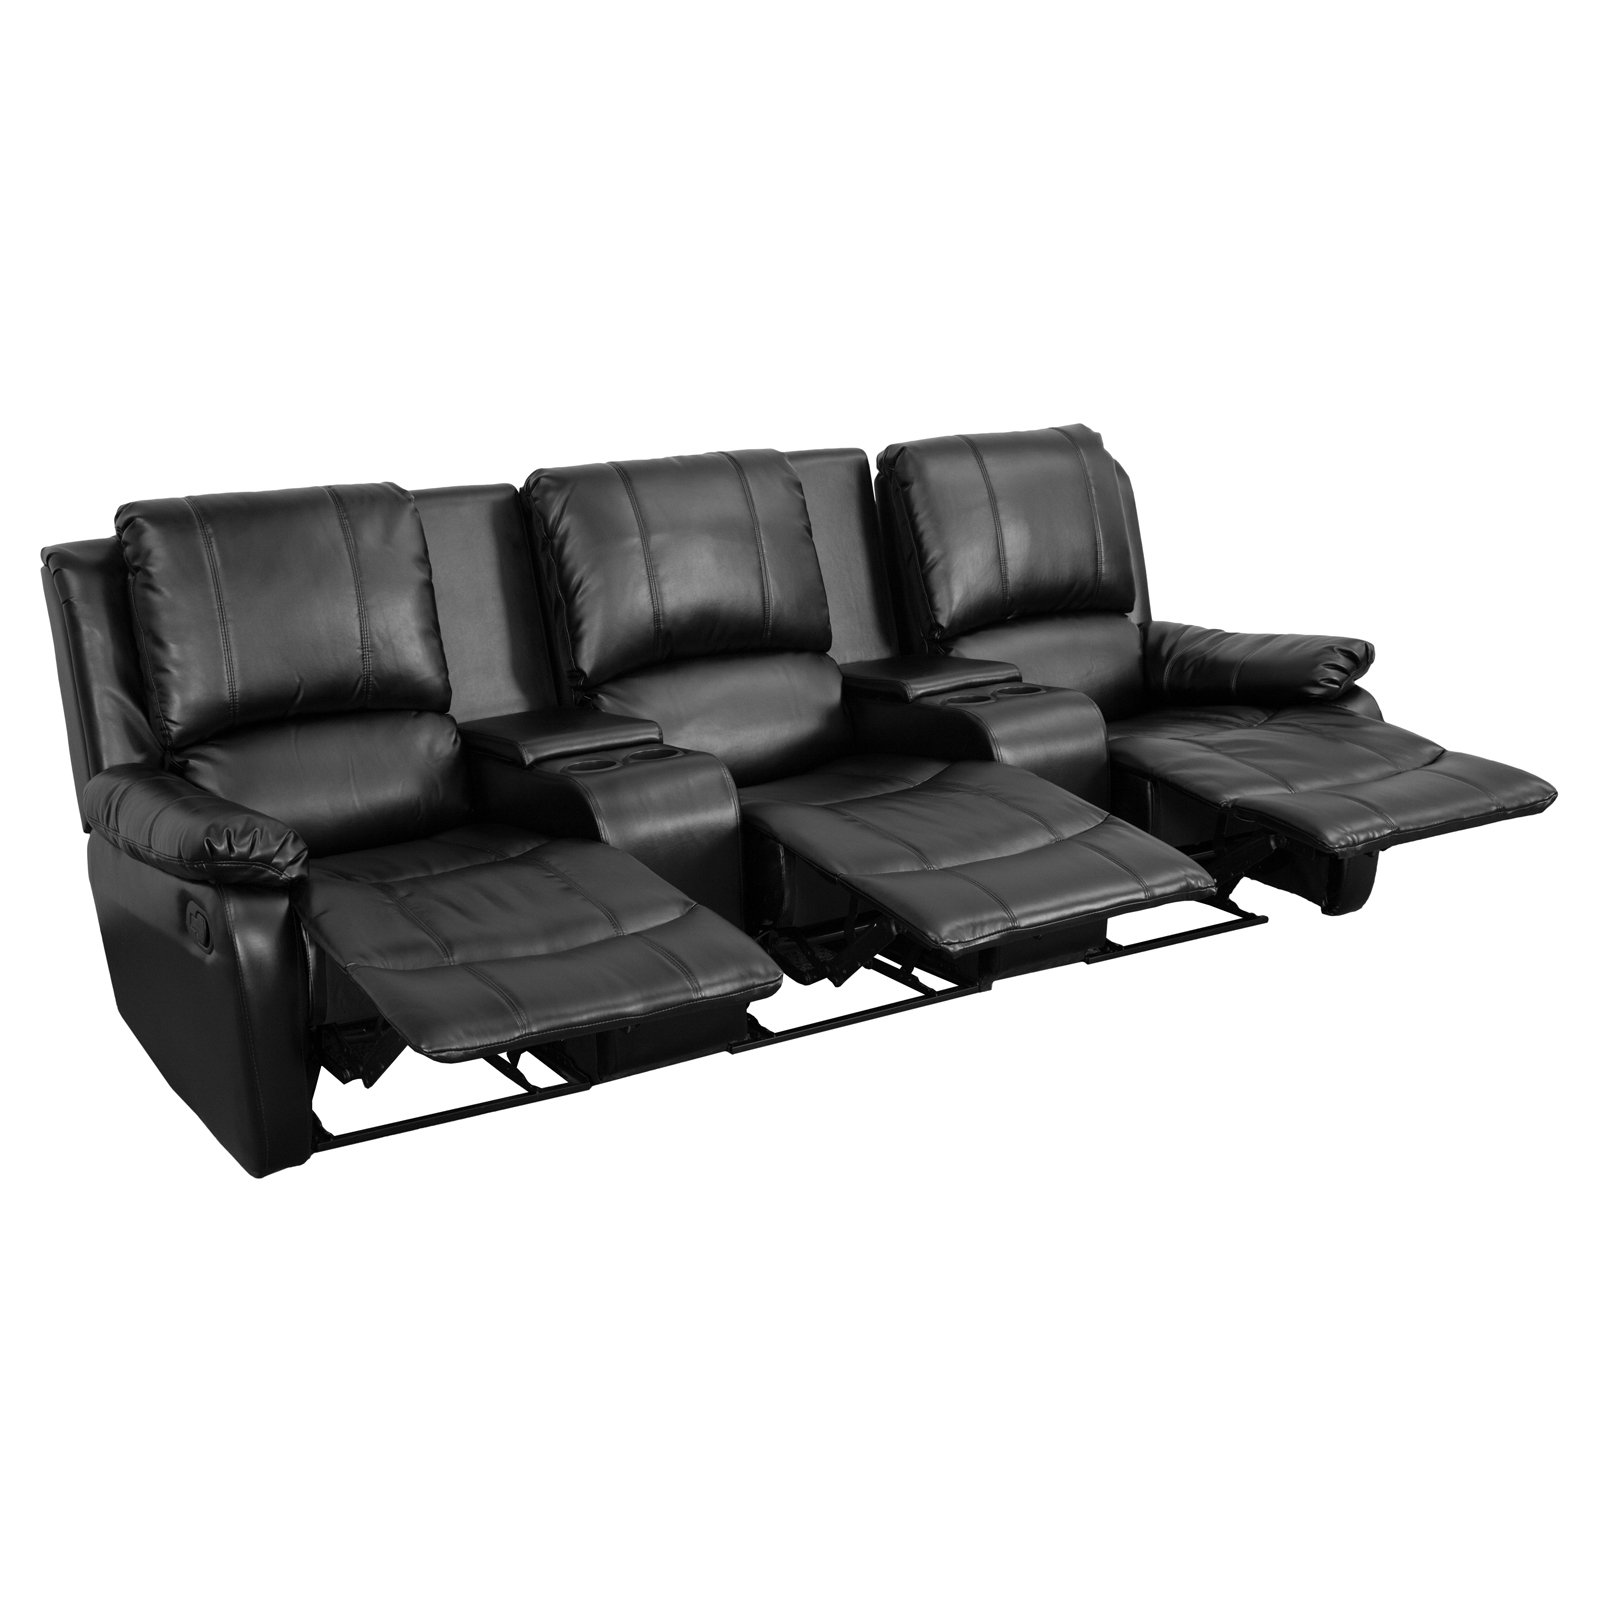 Flash Furniture Allure Series 3-Seat Reclining Pillow Back Leather Theater Seating Unit with Cup Holders